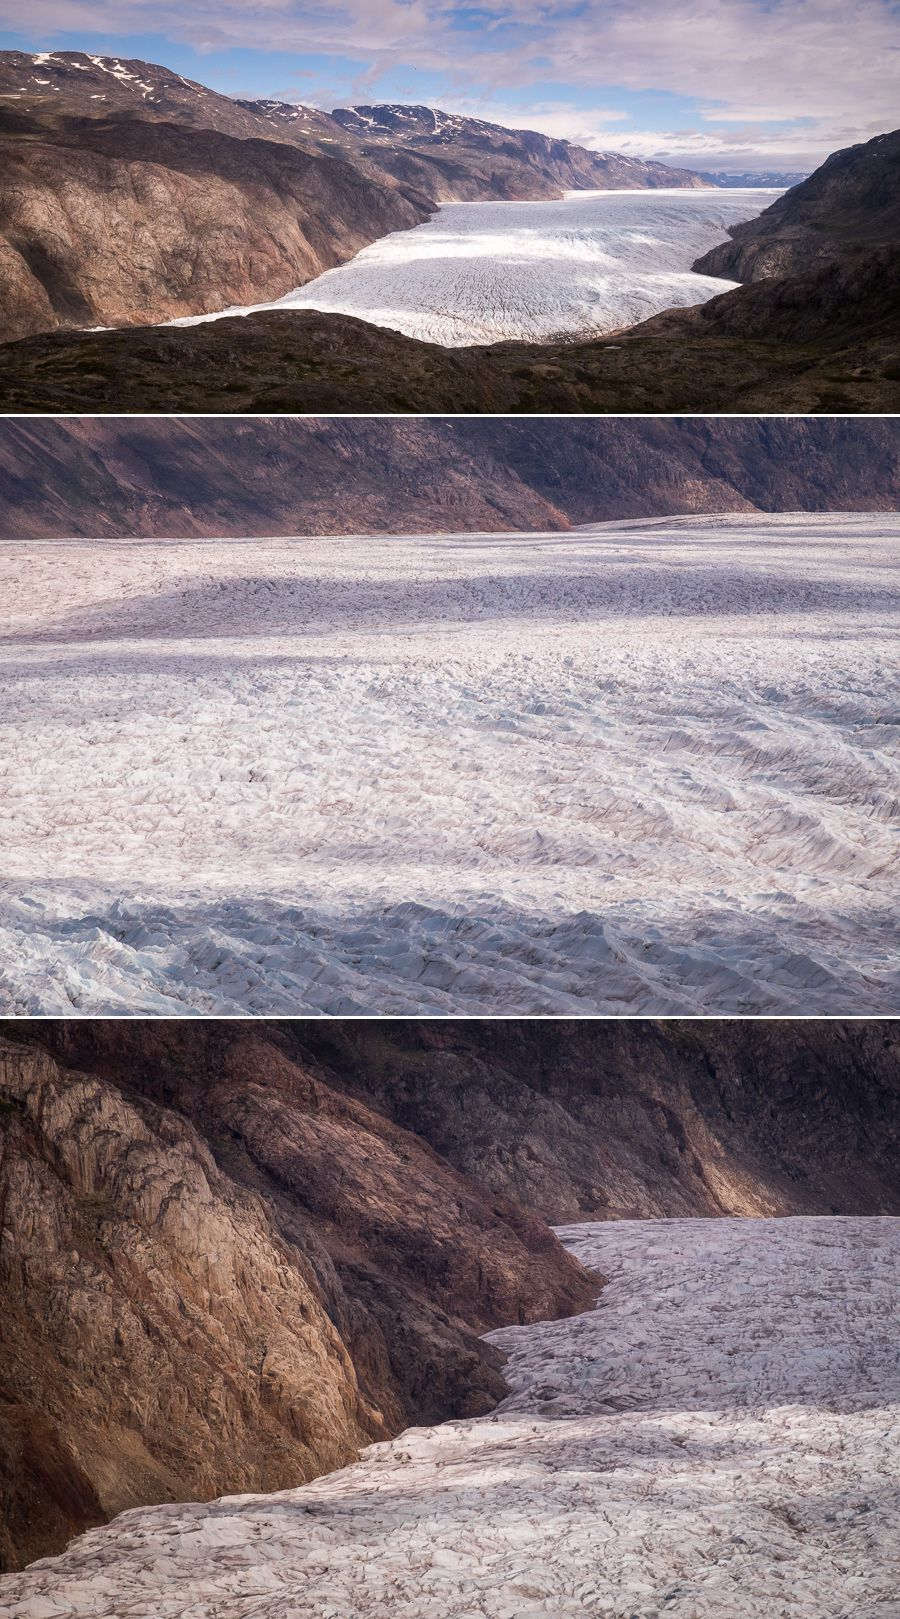 Several views of the Narsarsuaq Glacier taken from the main viewpoint of the hike in South Greenland